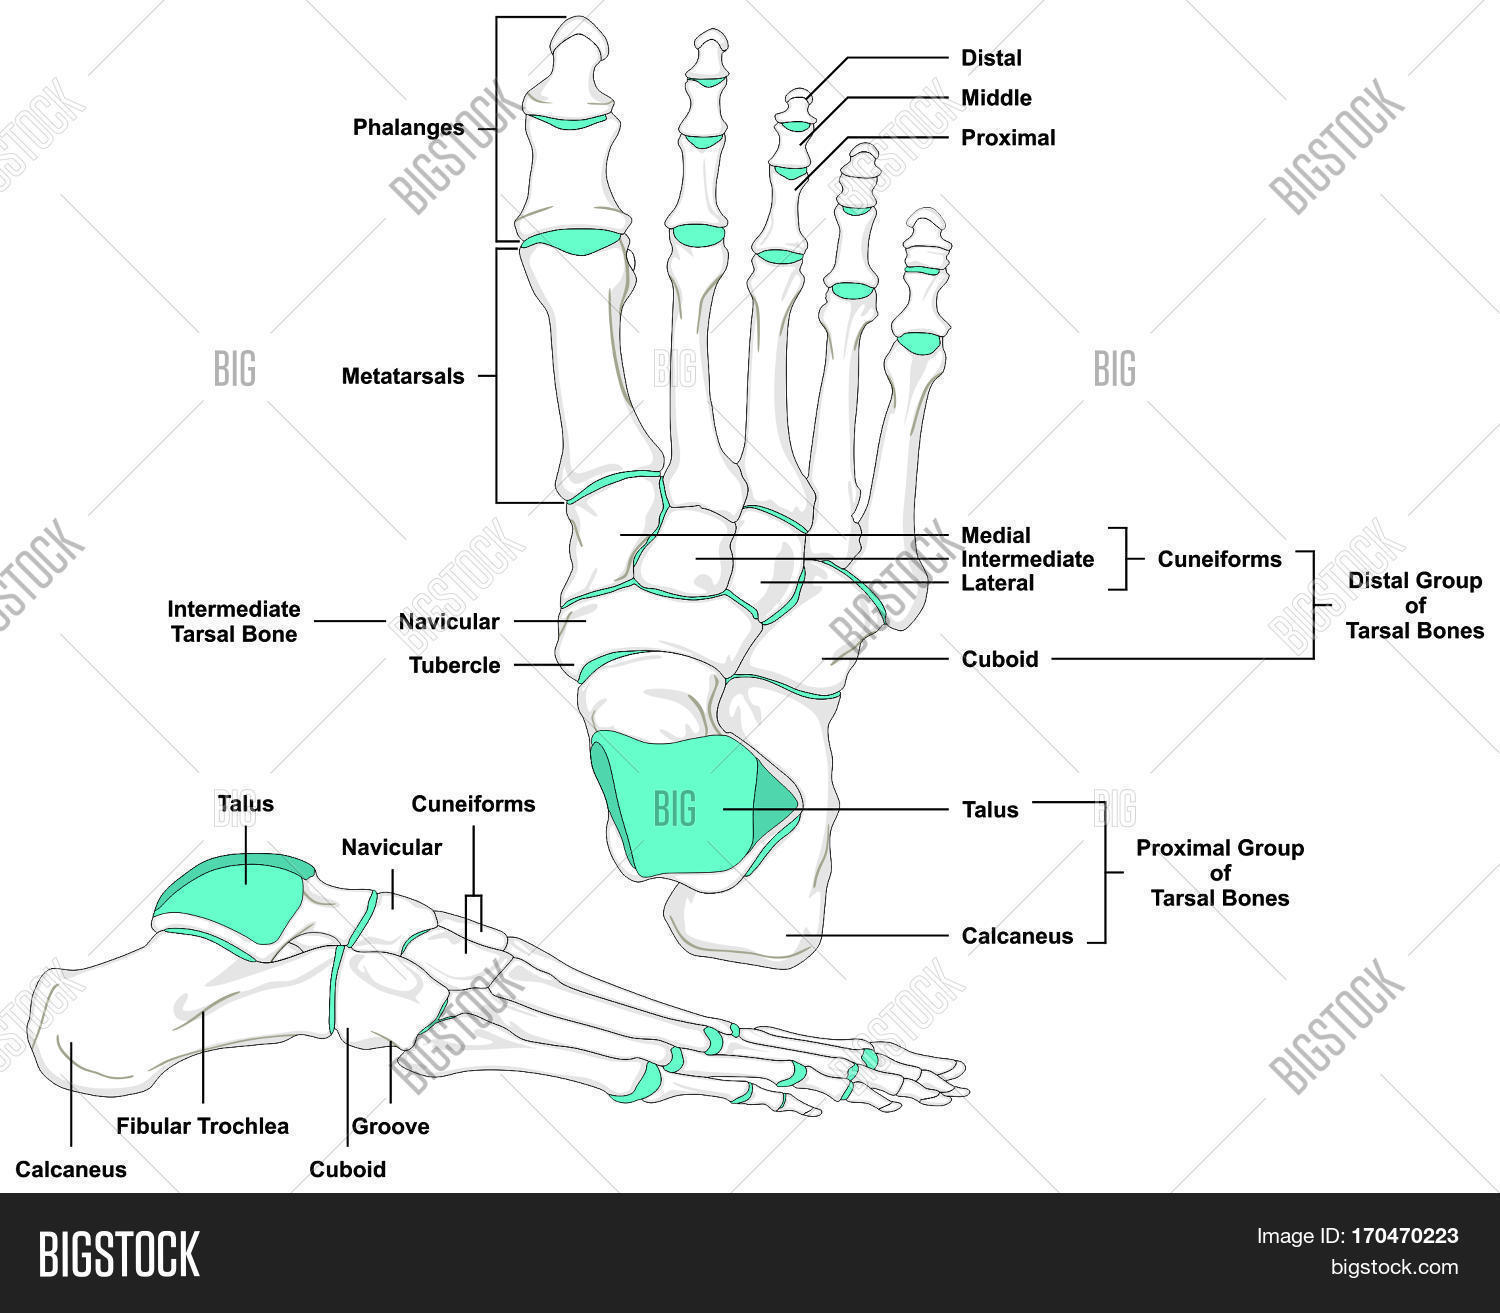 joints of the foot diagram 7 prong trailer plug wiring human bones image photo free trial bigstock anatomy in anatomical position front and lateral view with all bone names